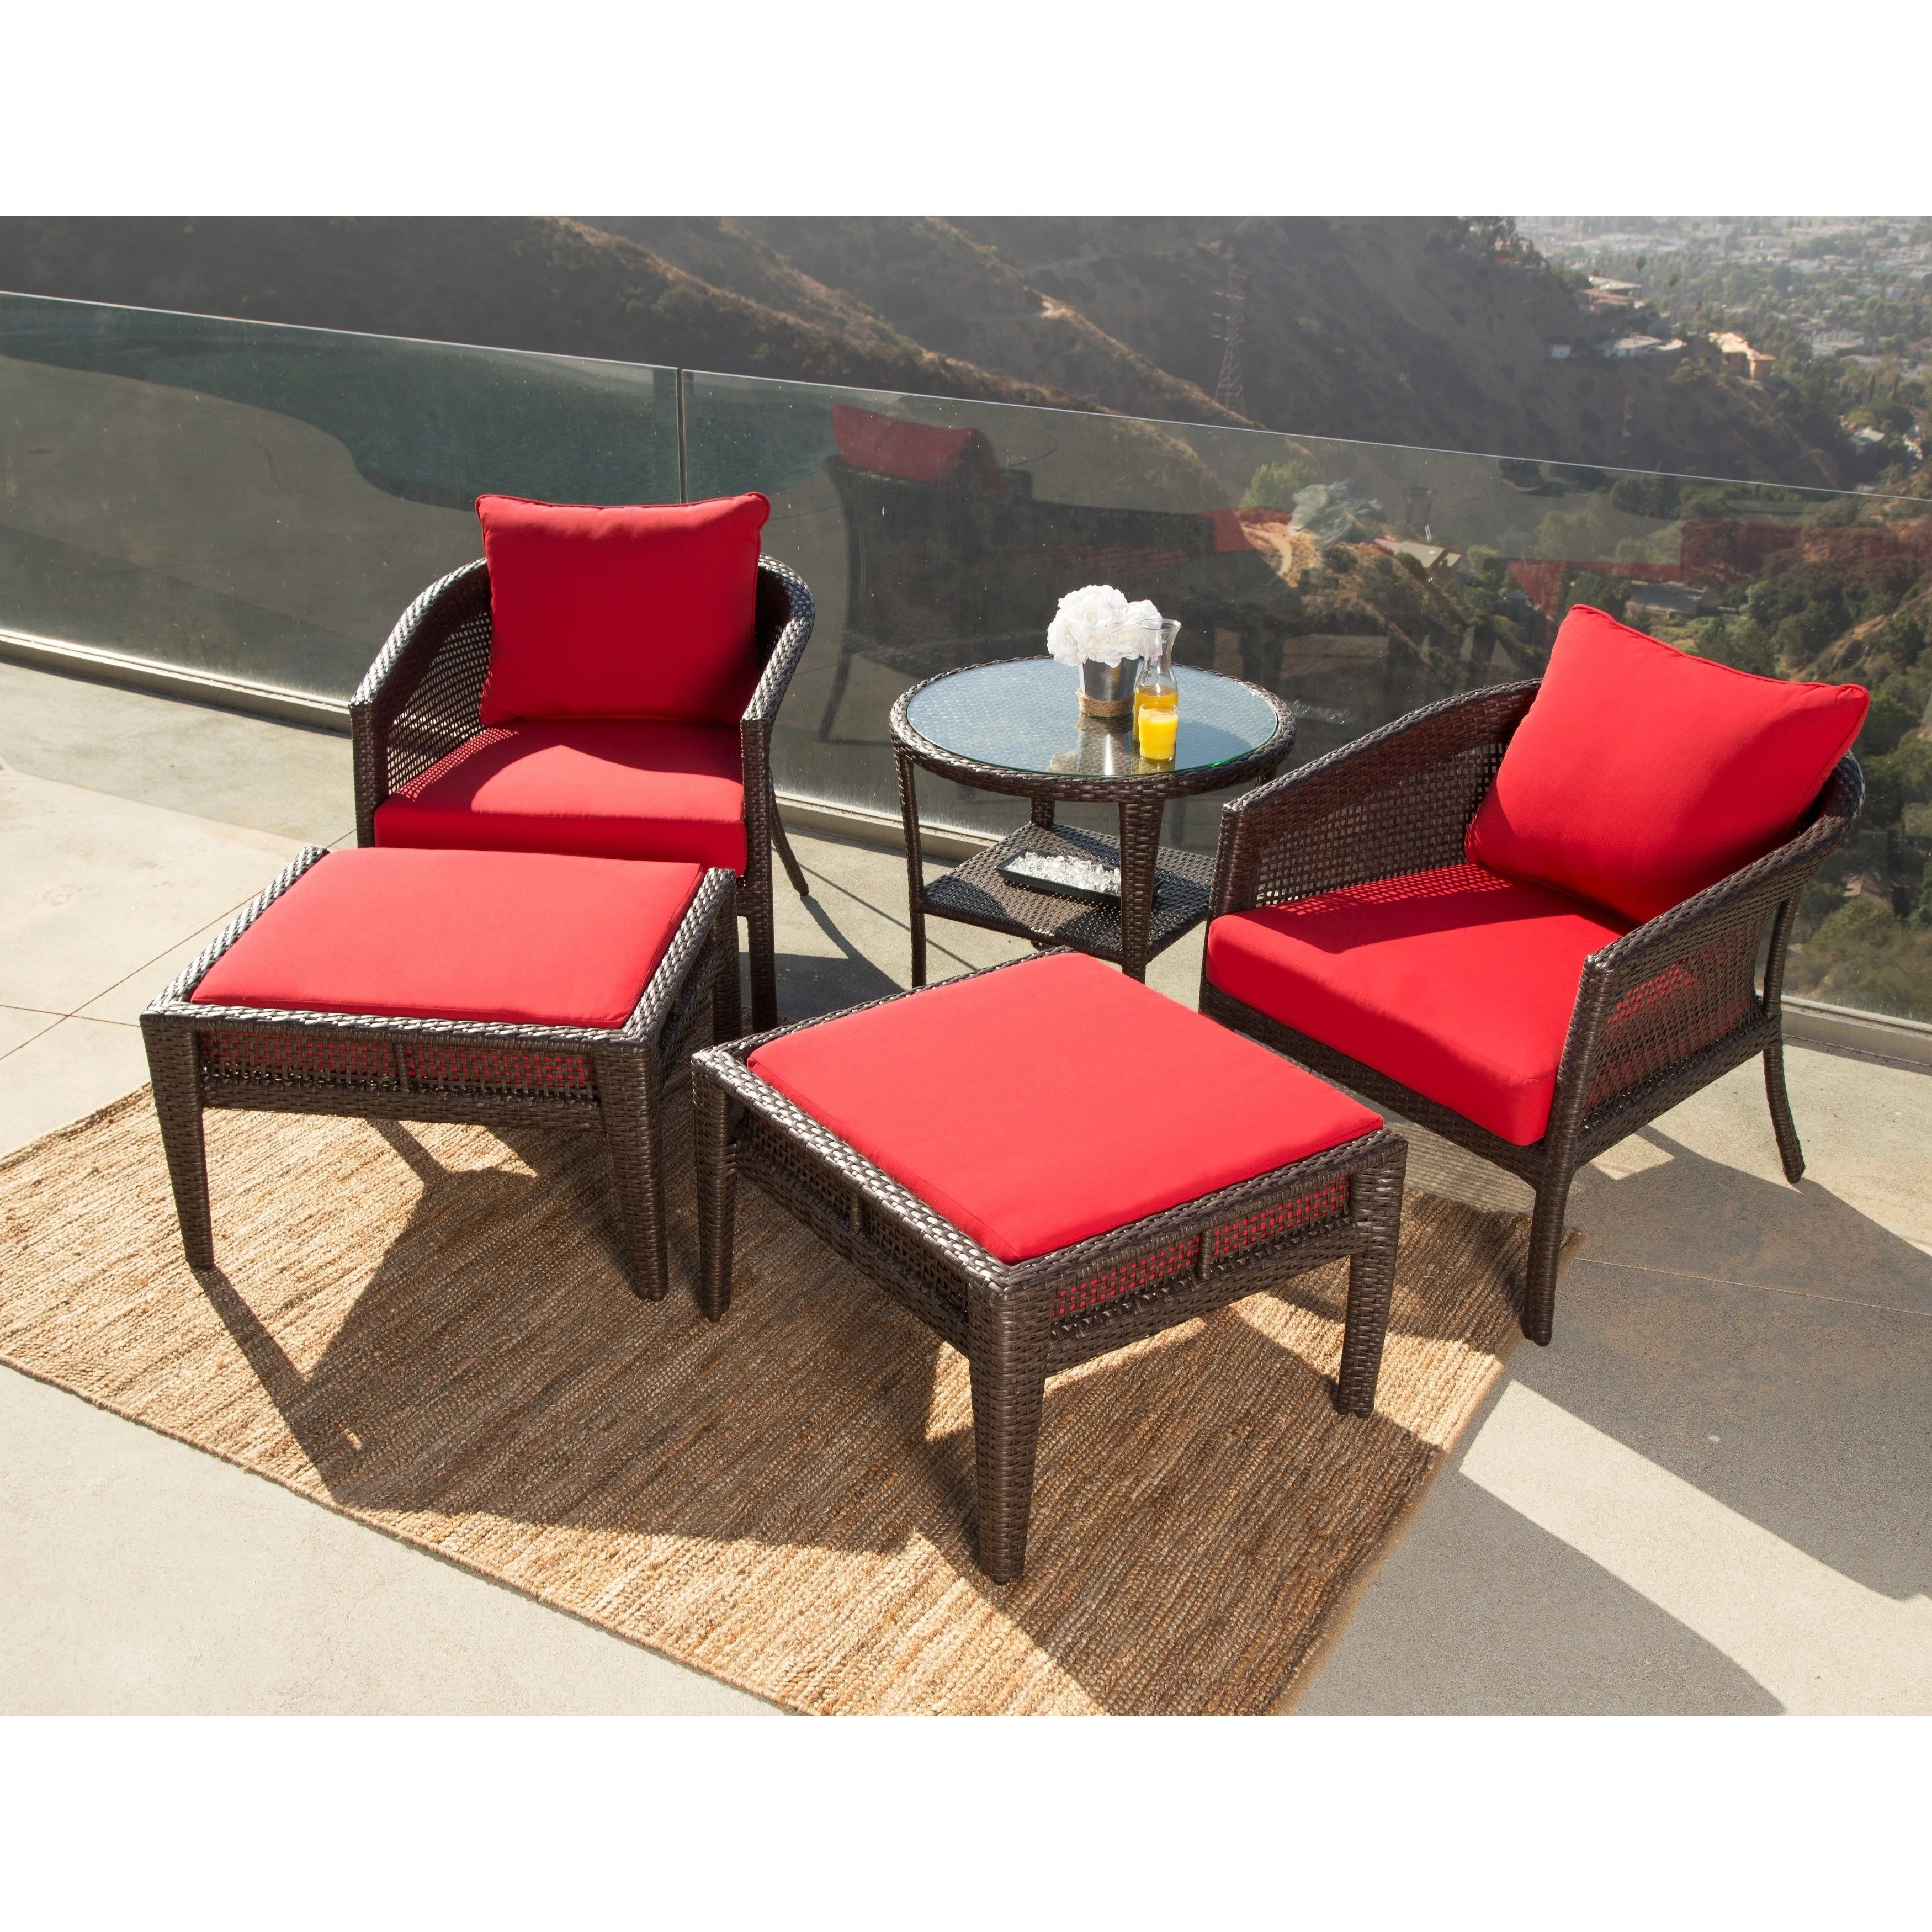 Red Patio Chairs Abbyson Santorini Sunbrella Red Outdoor Wicker 5 Piece Patio Chair Set